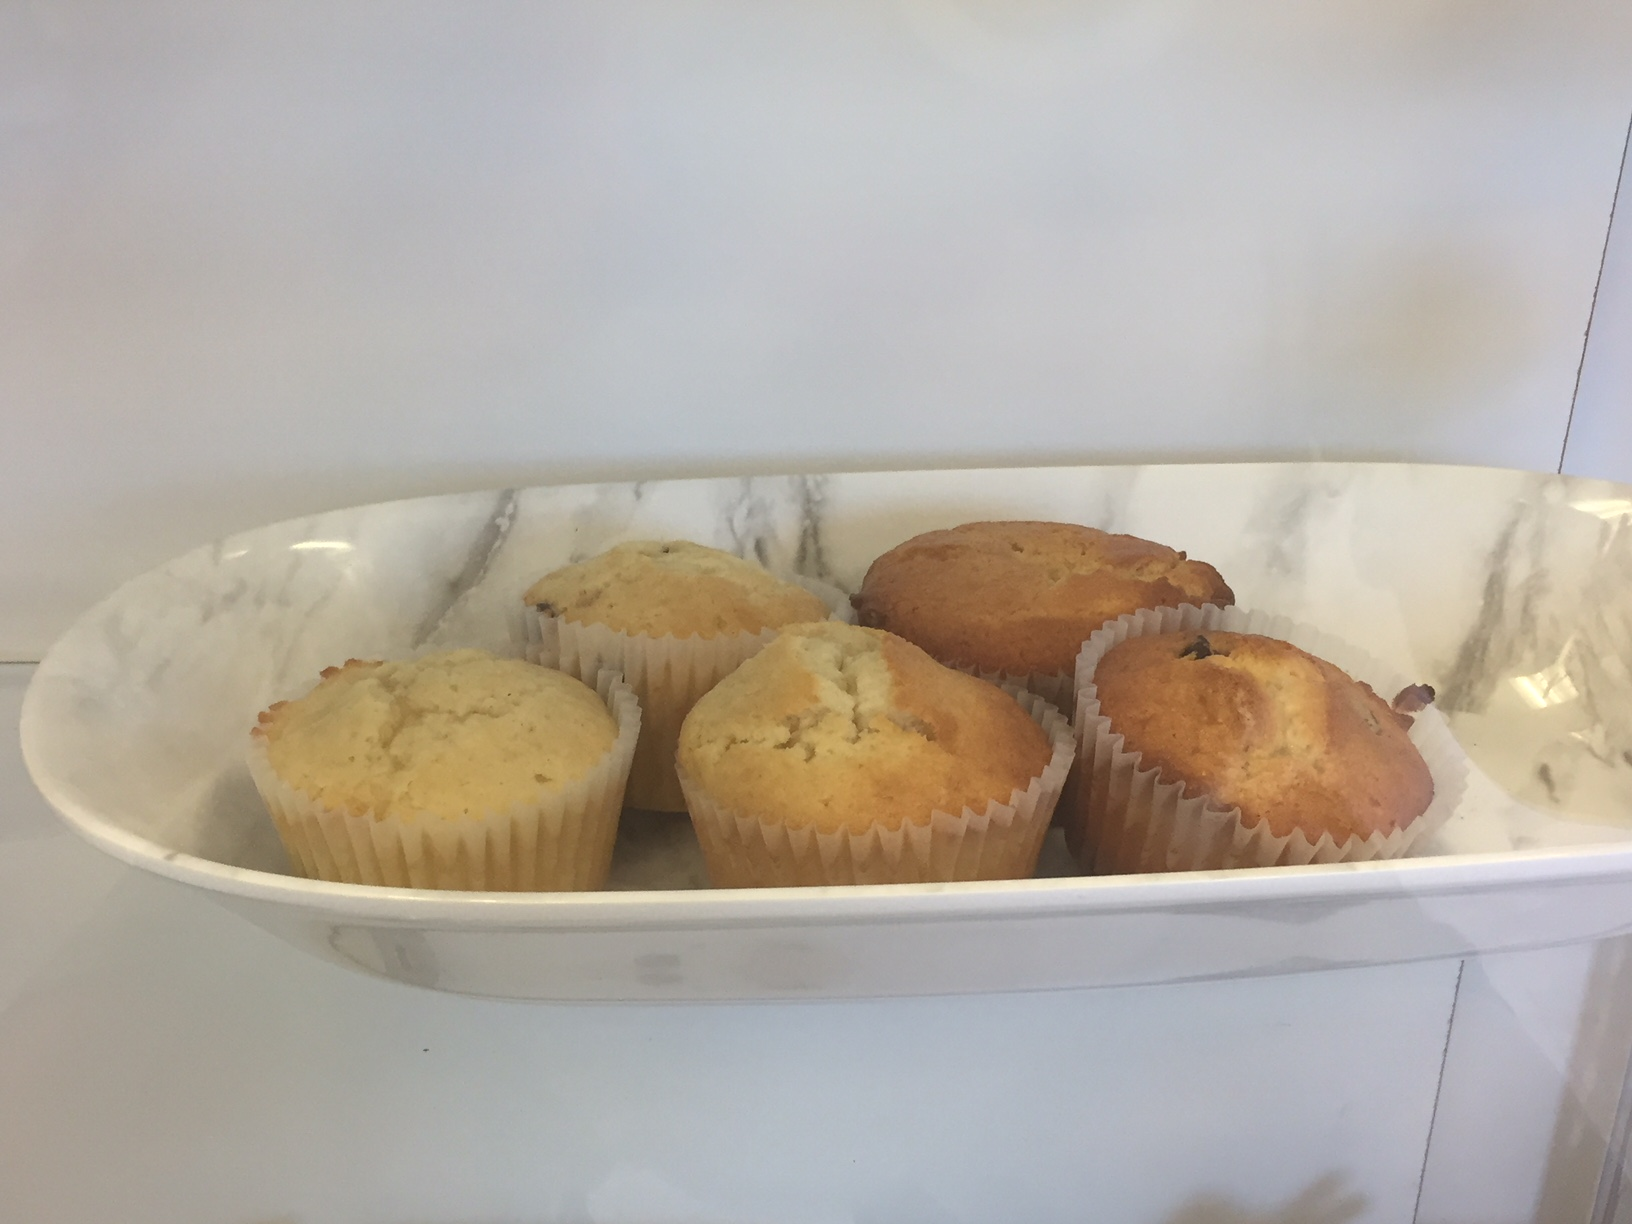 Two types of chocolate muffins in Auntie Cake's Bakery, NC. Photo: Kay Whatley